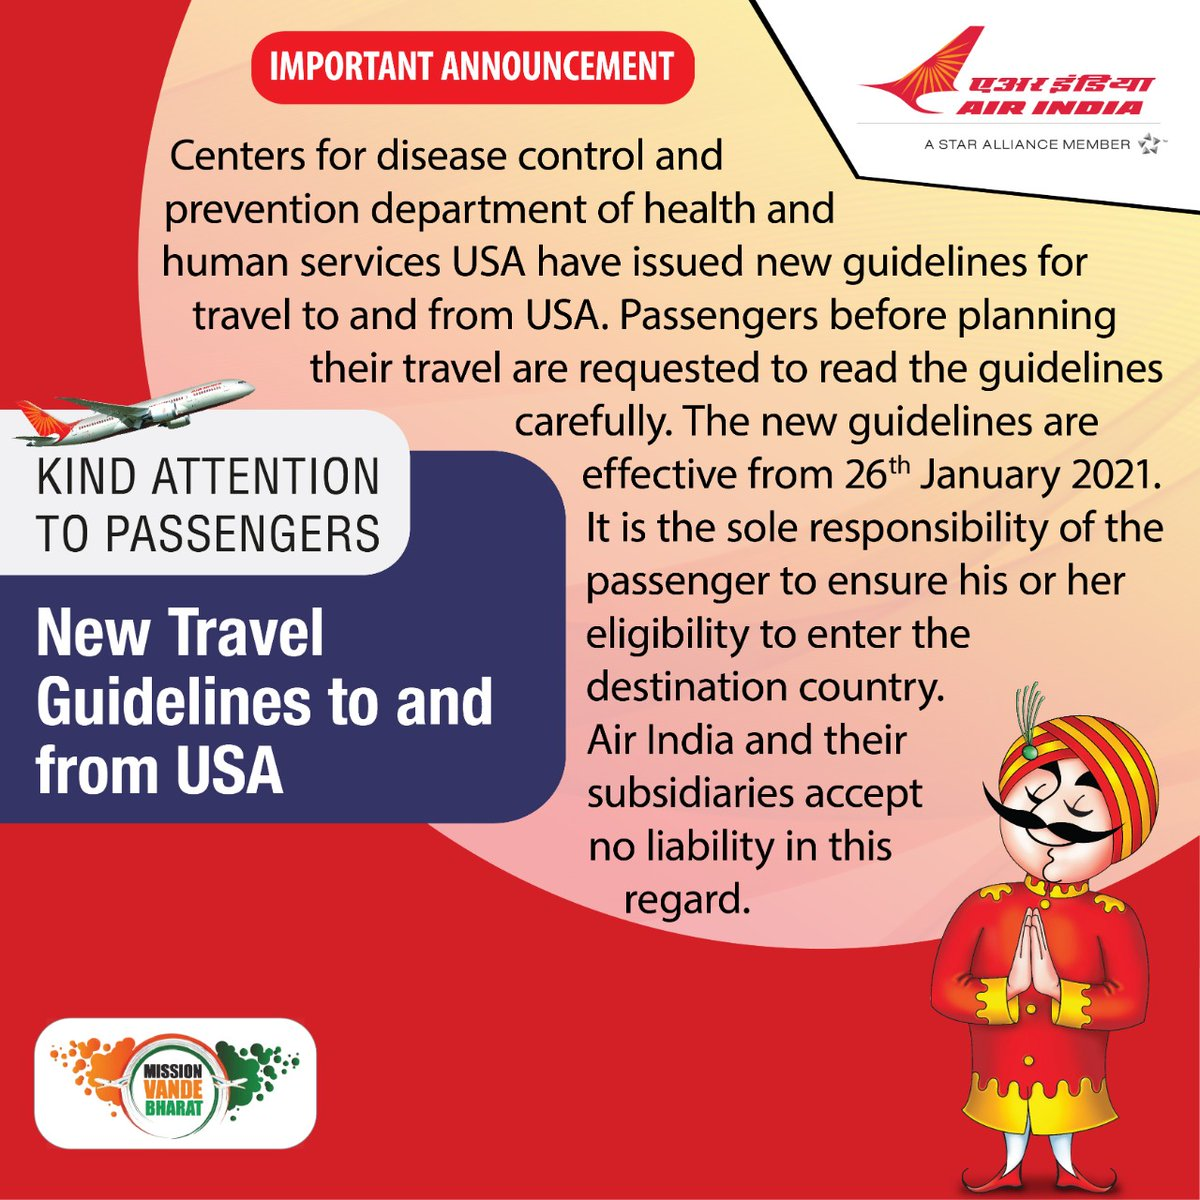 #FlyAI  : Govt of the USA has issued new guidelines for travel to and from foreign destinations. Passengers are requested to read the guidelines carefully which are are effective from 26th Jan ,'21.   For detailed Guidelines please click on